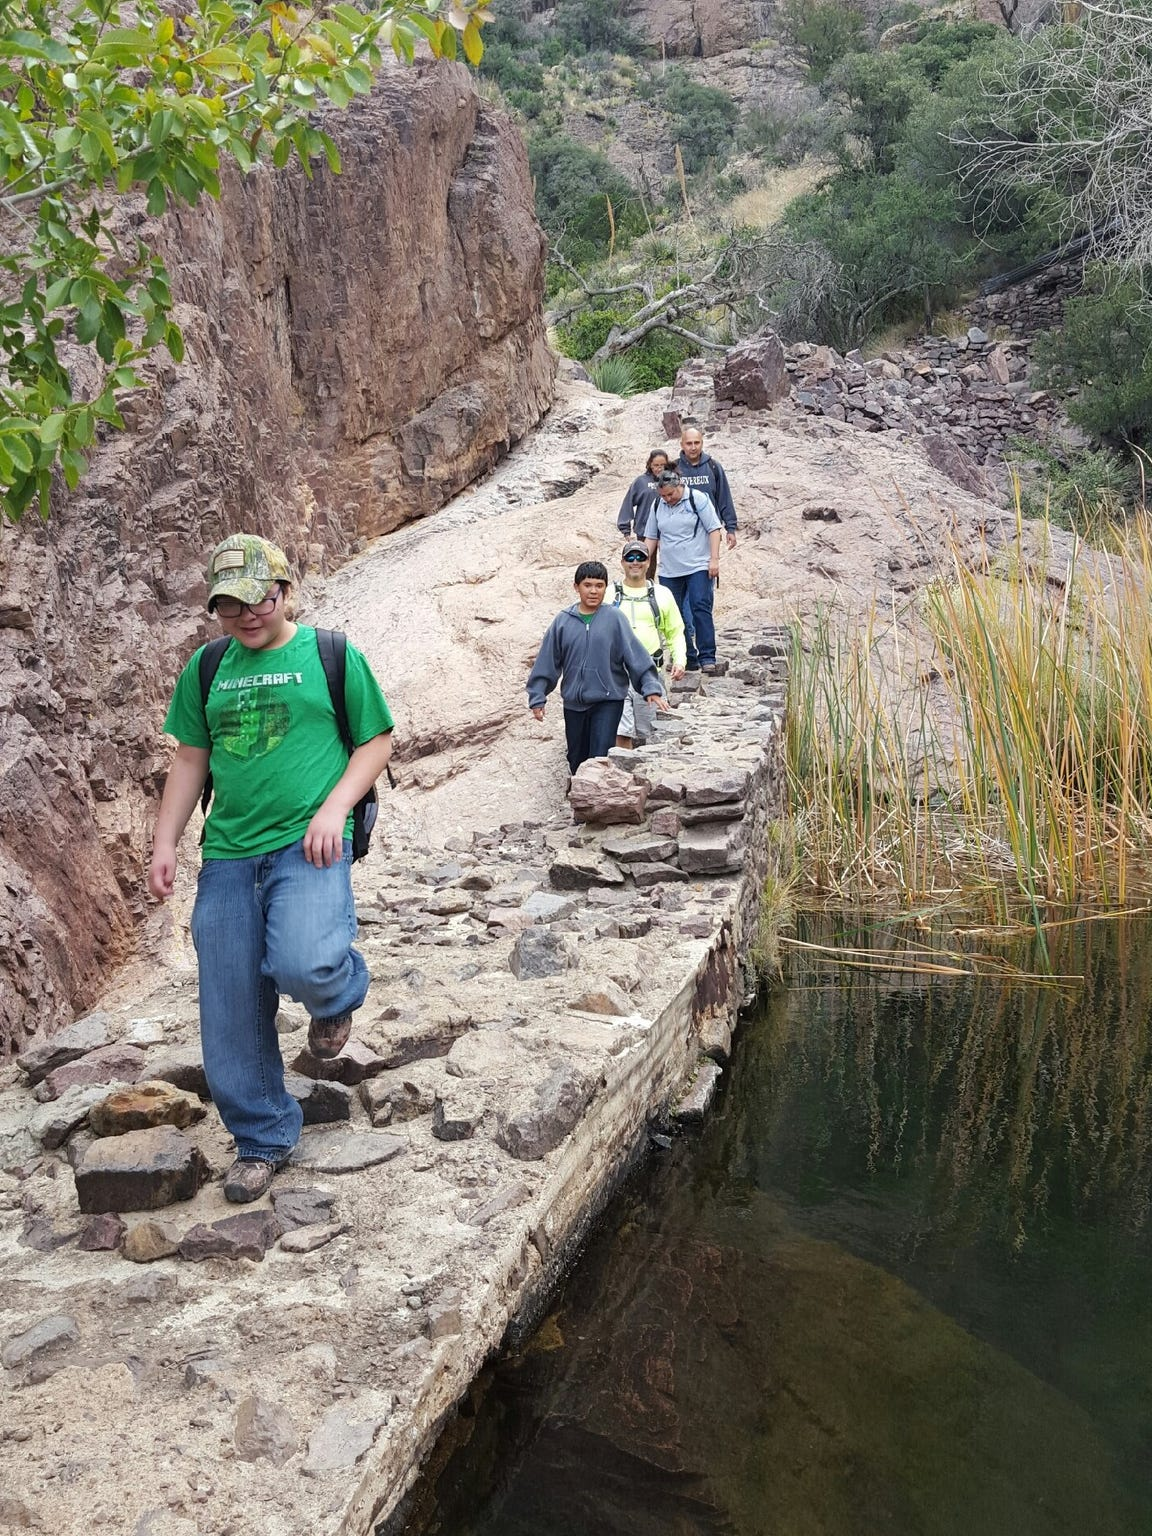 Kids hike a trail in Dripping Springs Natural Area as part of the City of  Las Cruces Parks and Recreation Department's Youth Plus 1 Hiking Program in 2016.